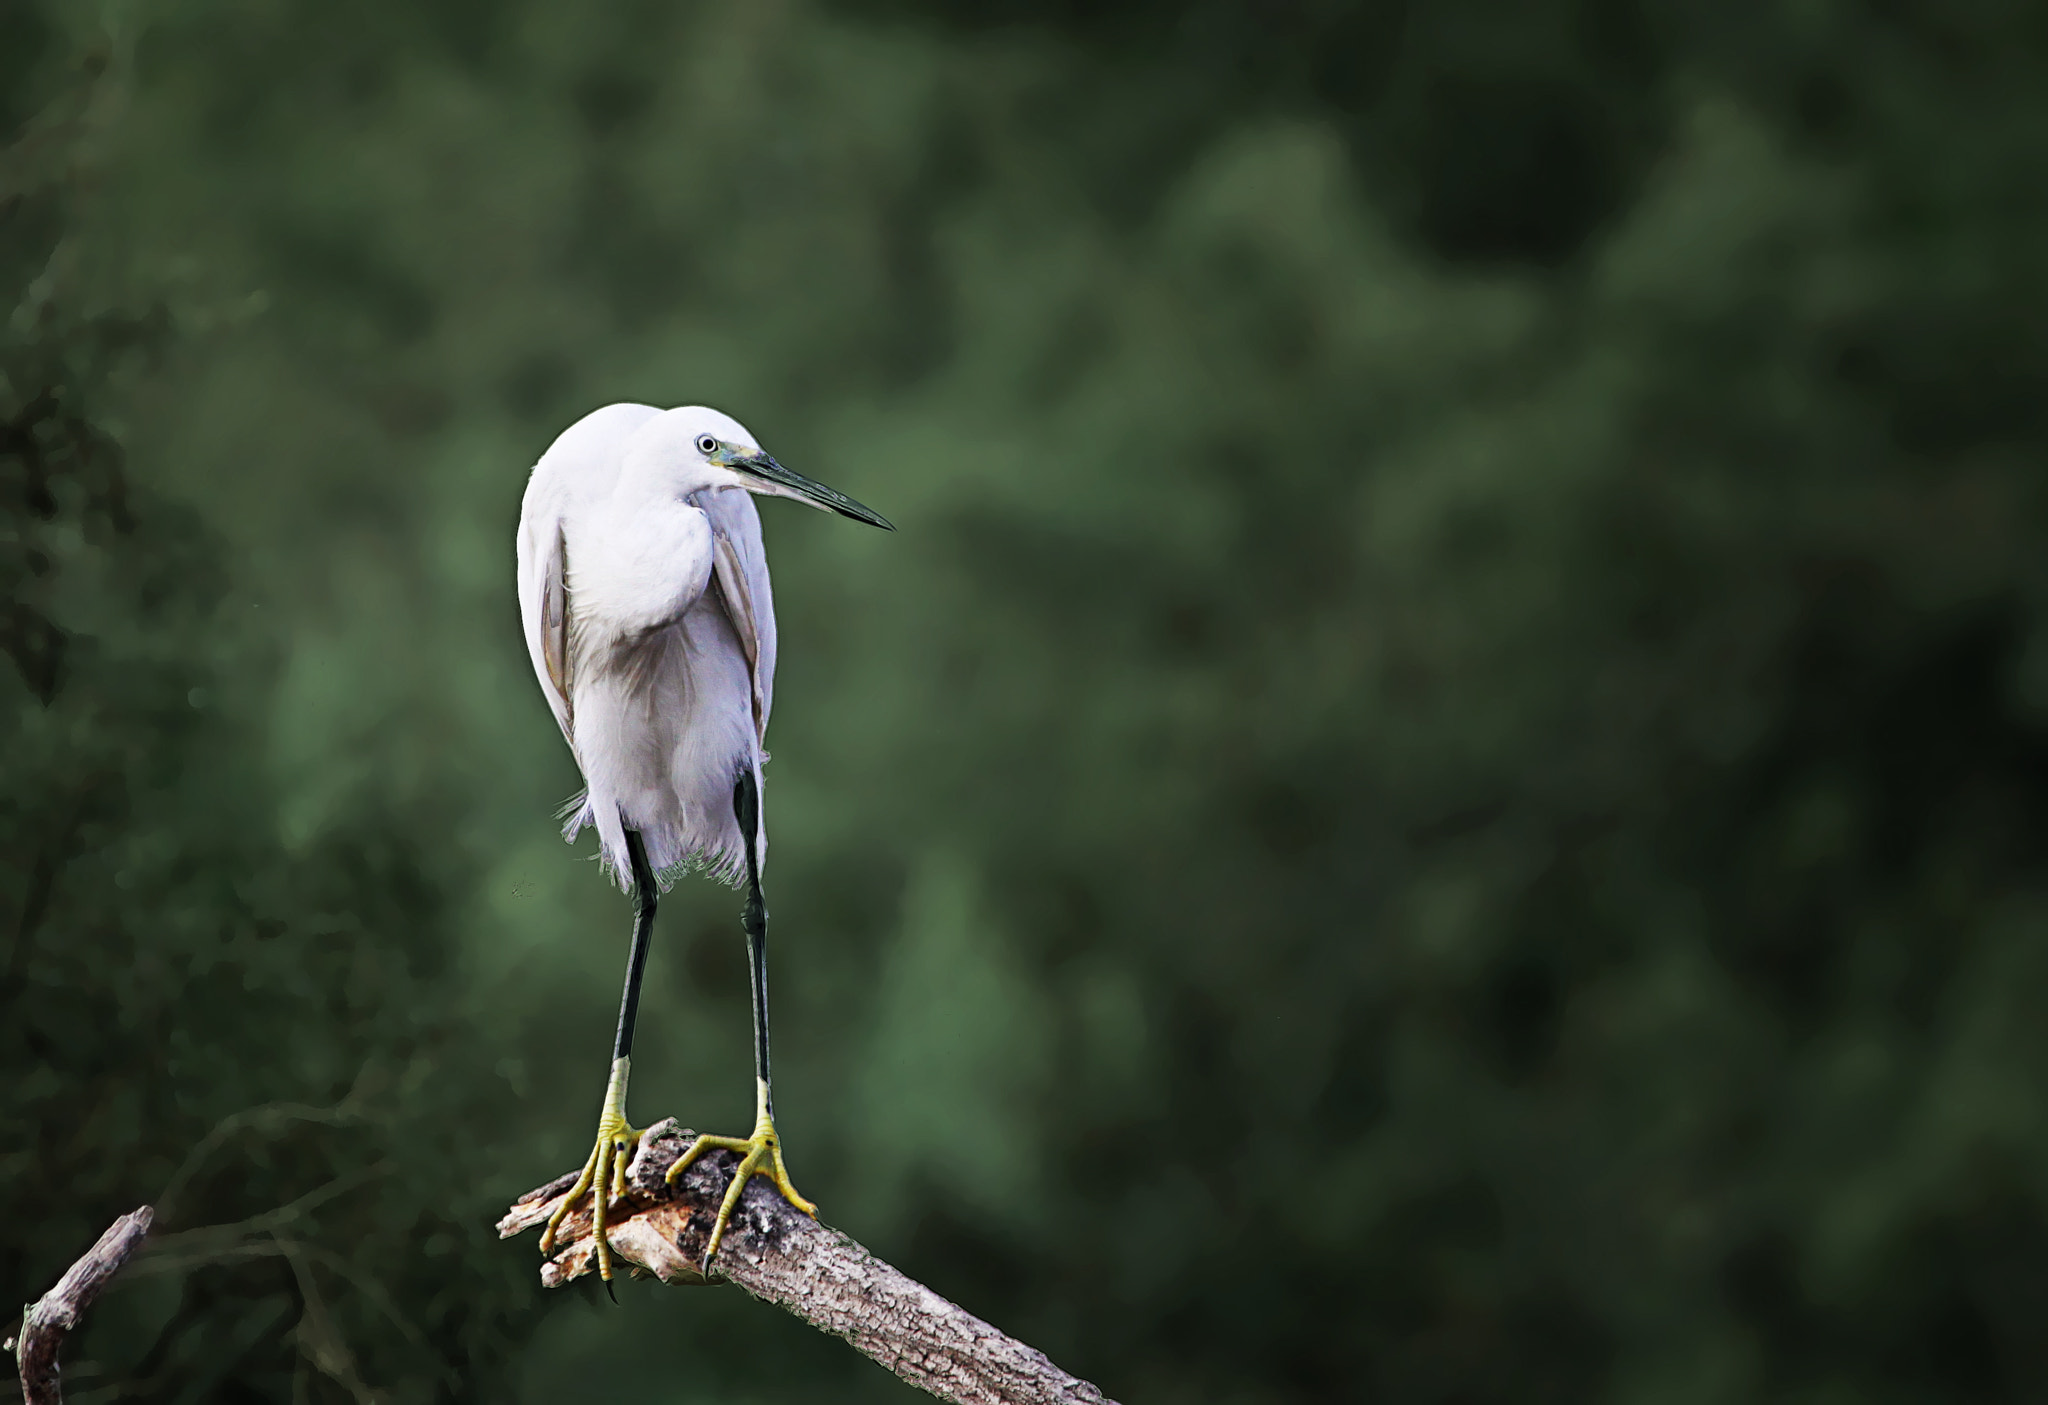 Photograph Egretta garzetta by  Michal De-porto on 500px